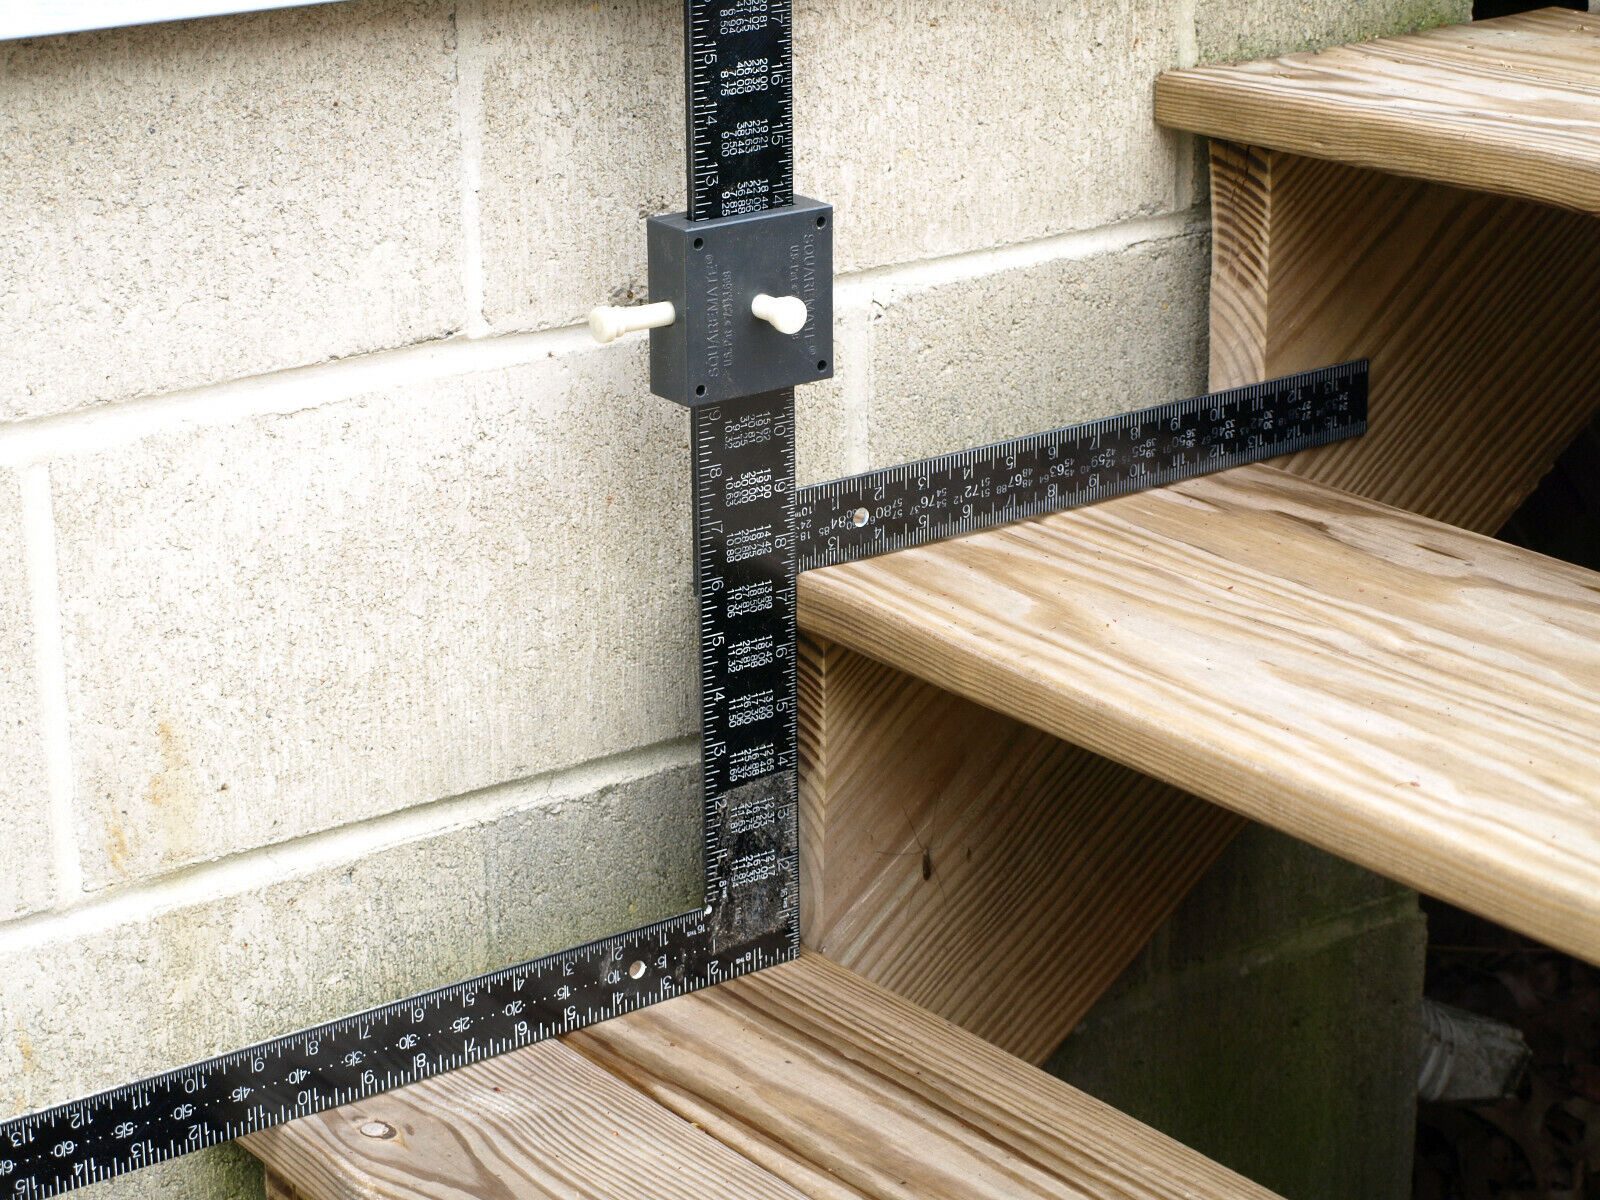 Multiple Framing Square Clamp Tool for Measuring and Marking